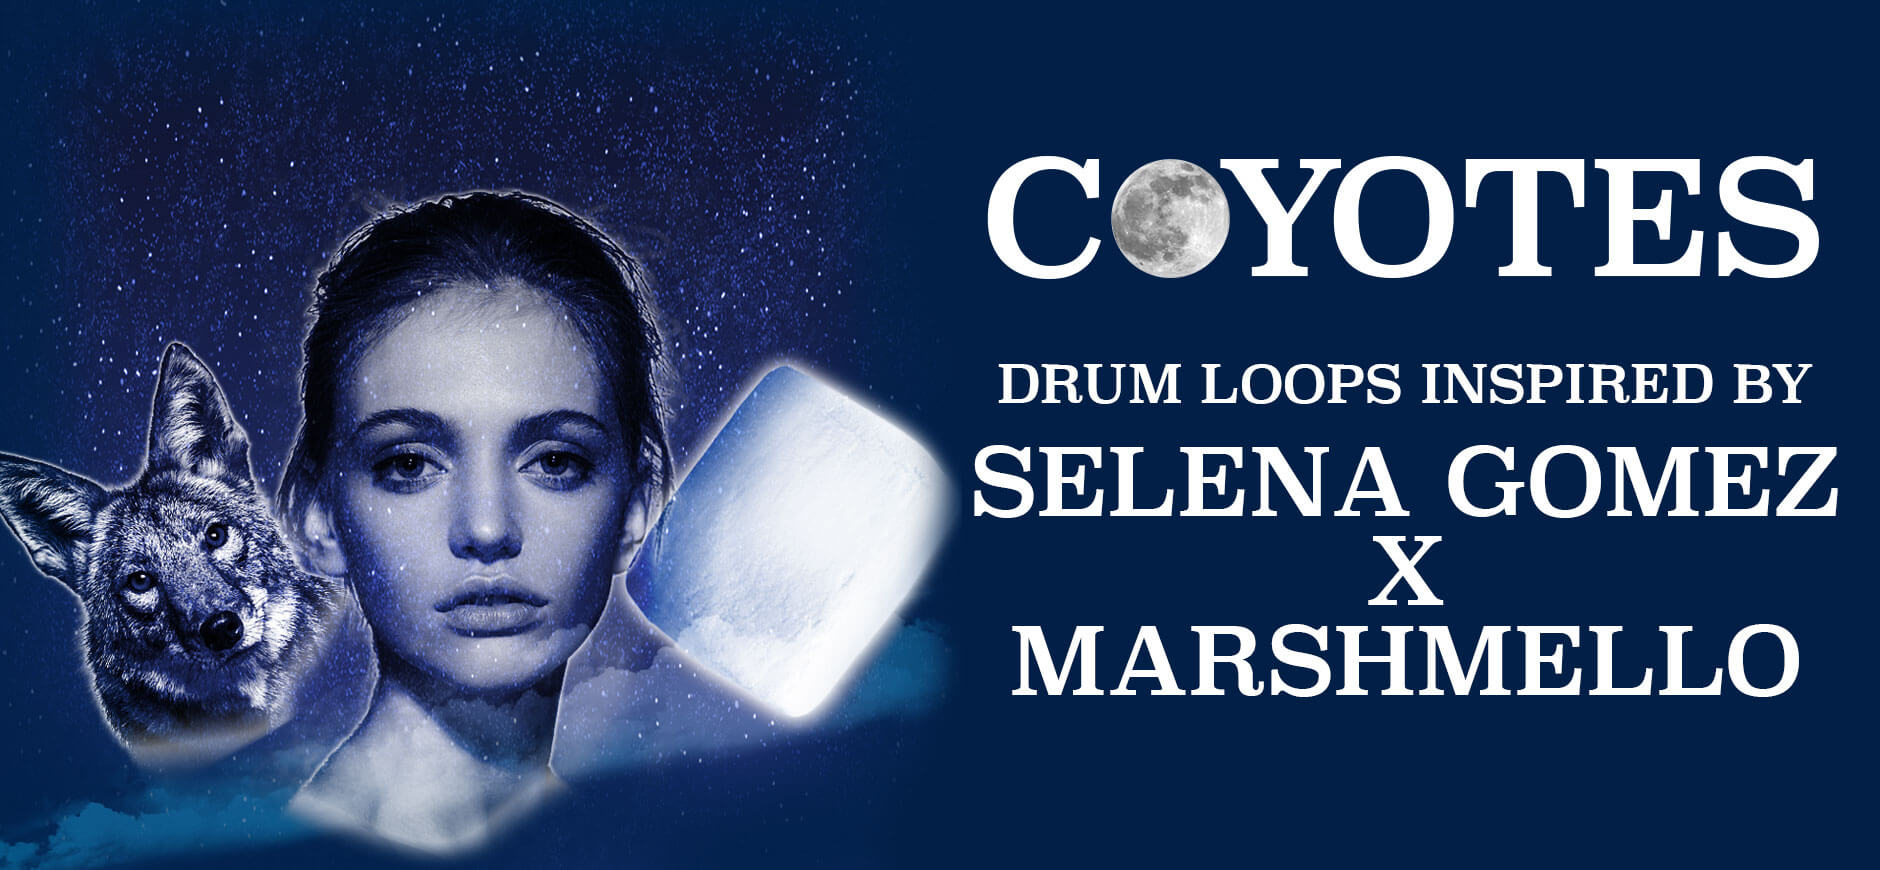 Wolves Drum Loops Inspired by Selena Gomez X Marshmello